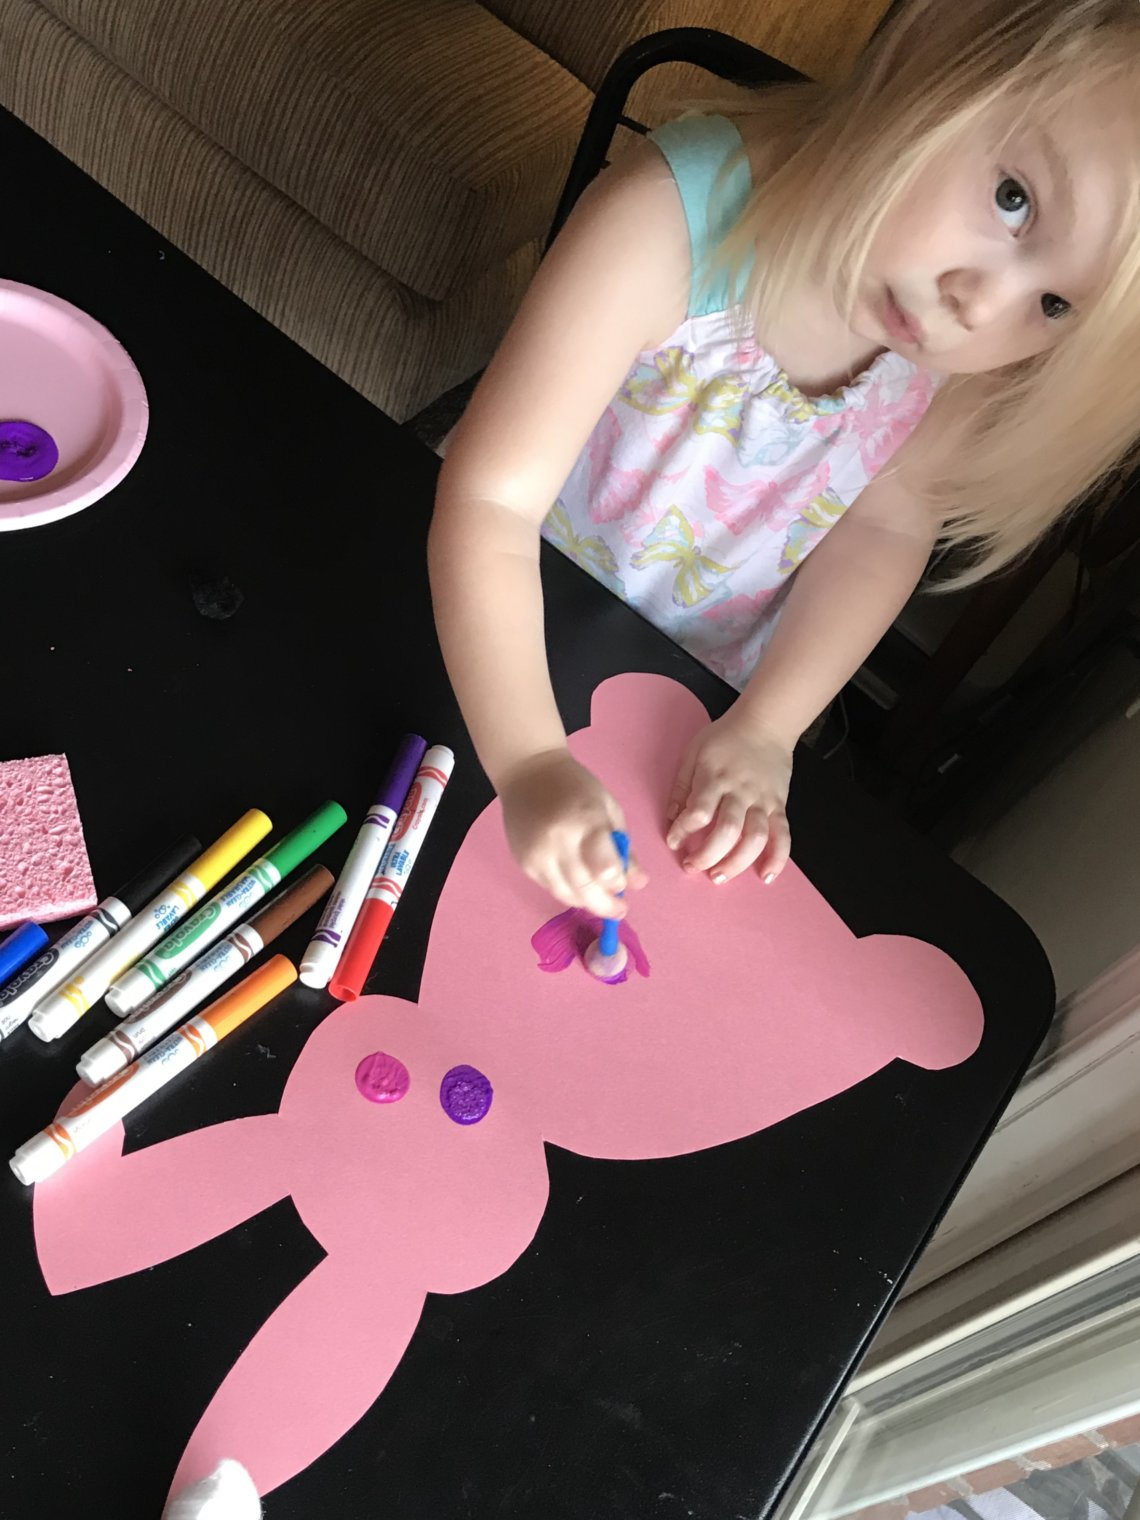 3 year old girl painting pink construction cutout of a bunny